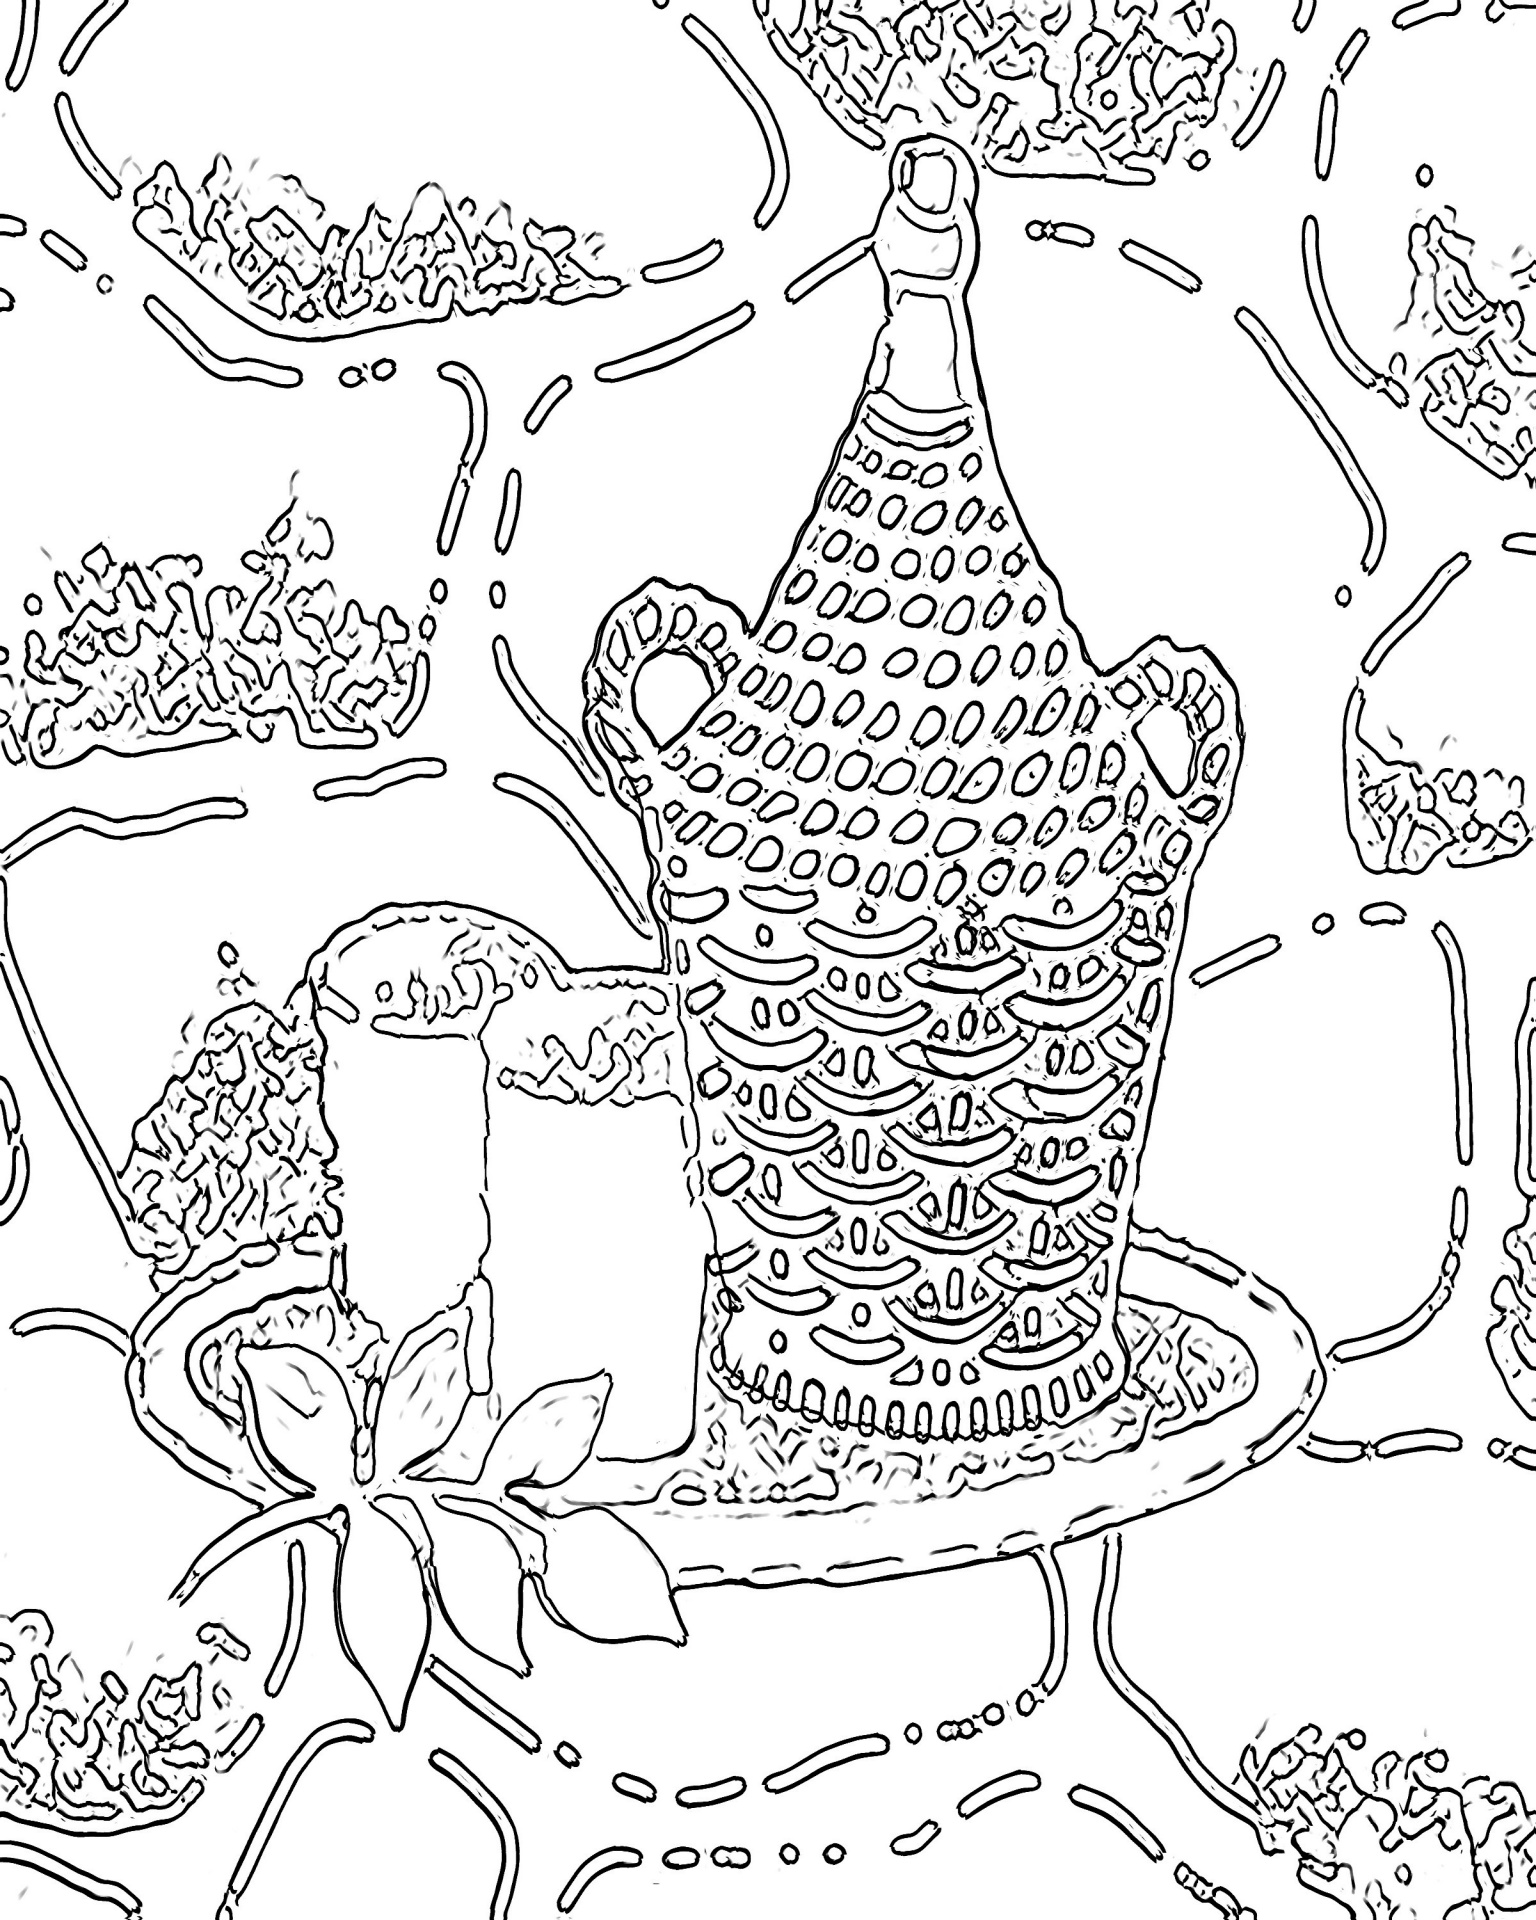 aduly coloring pages - photo#39